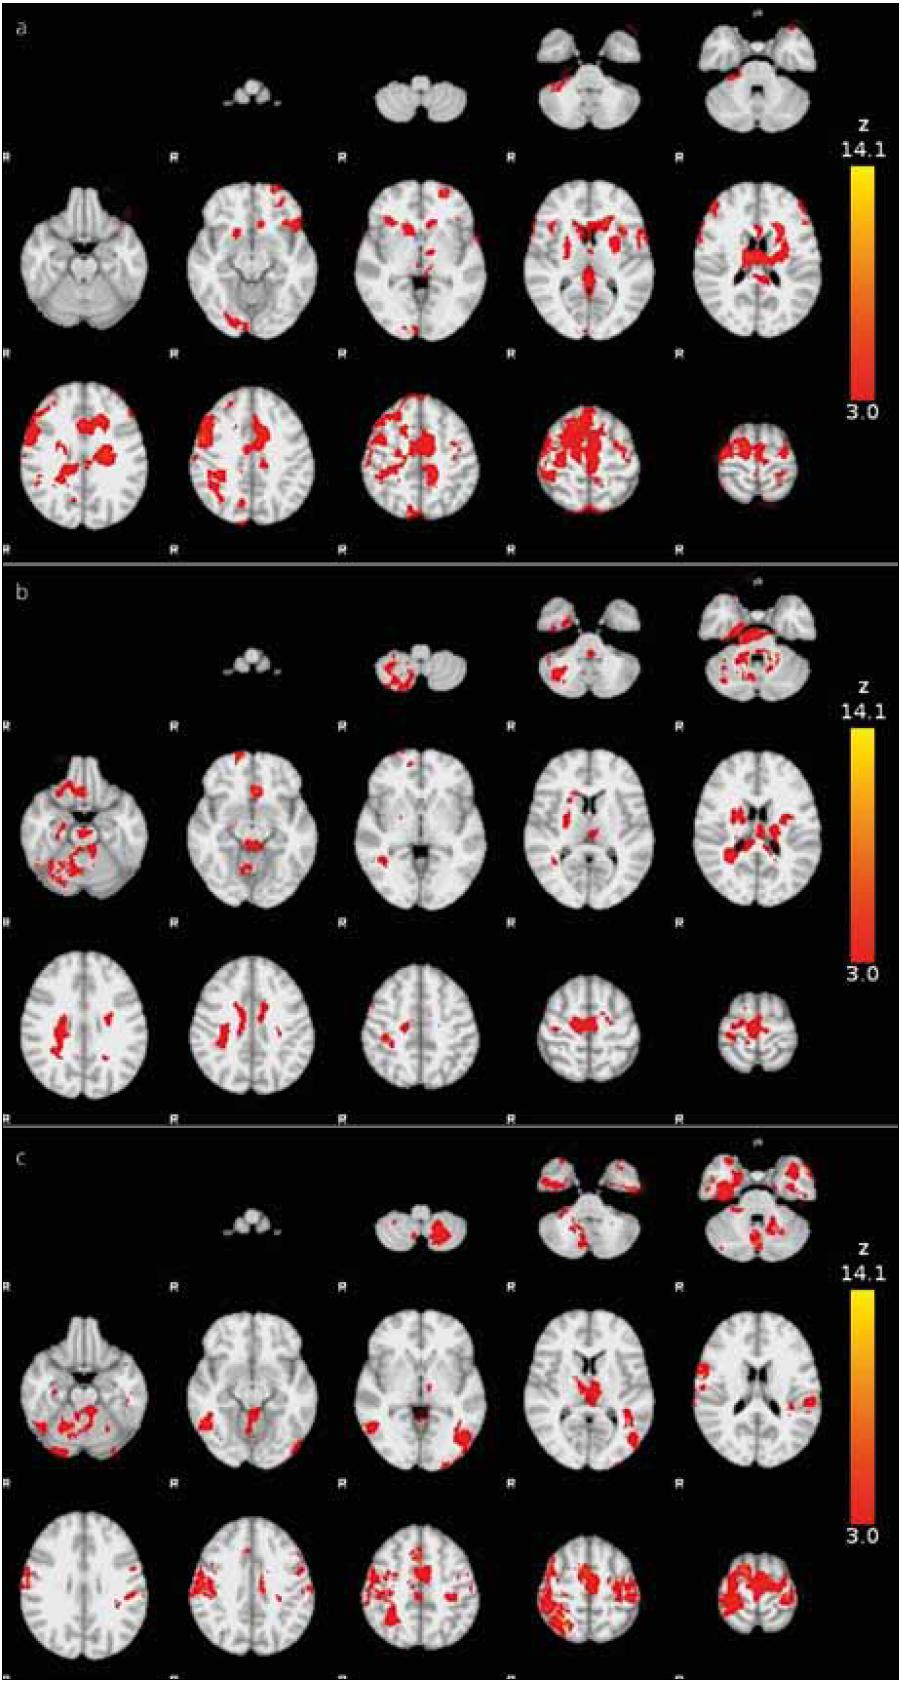 Fig. 1. Functional MRI activation during a real finger movement (a) before BoNT treatment, (b) four and (c) eleven weeks following BoNT administration.